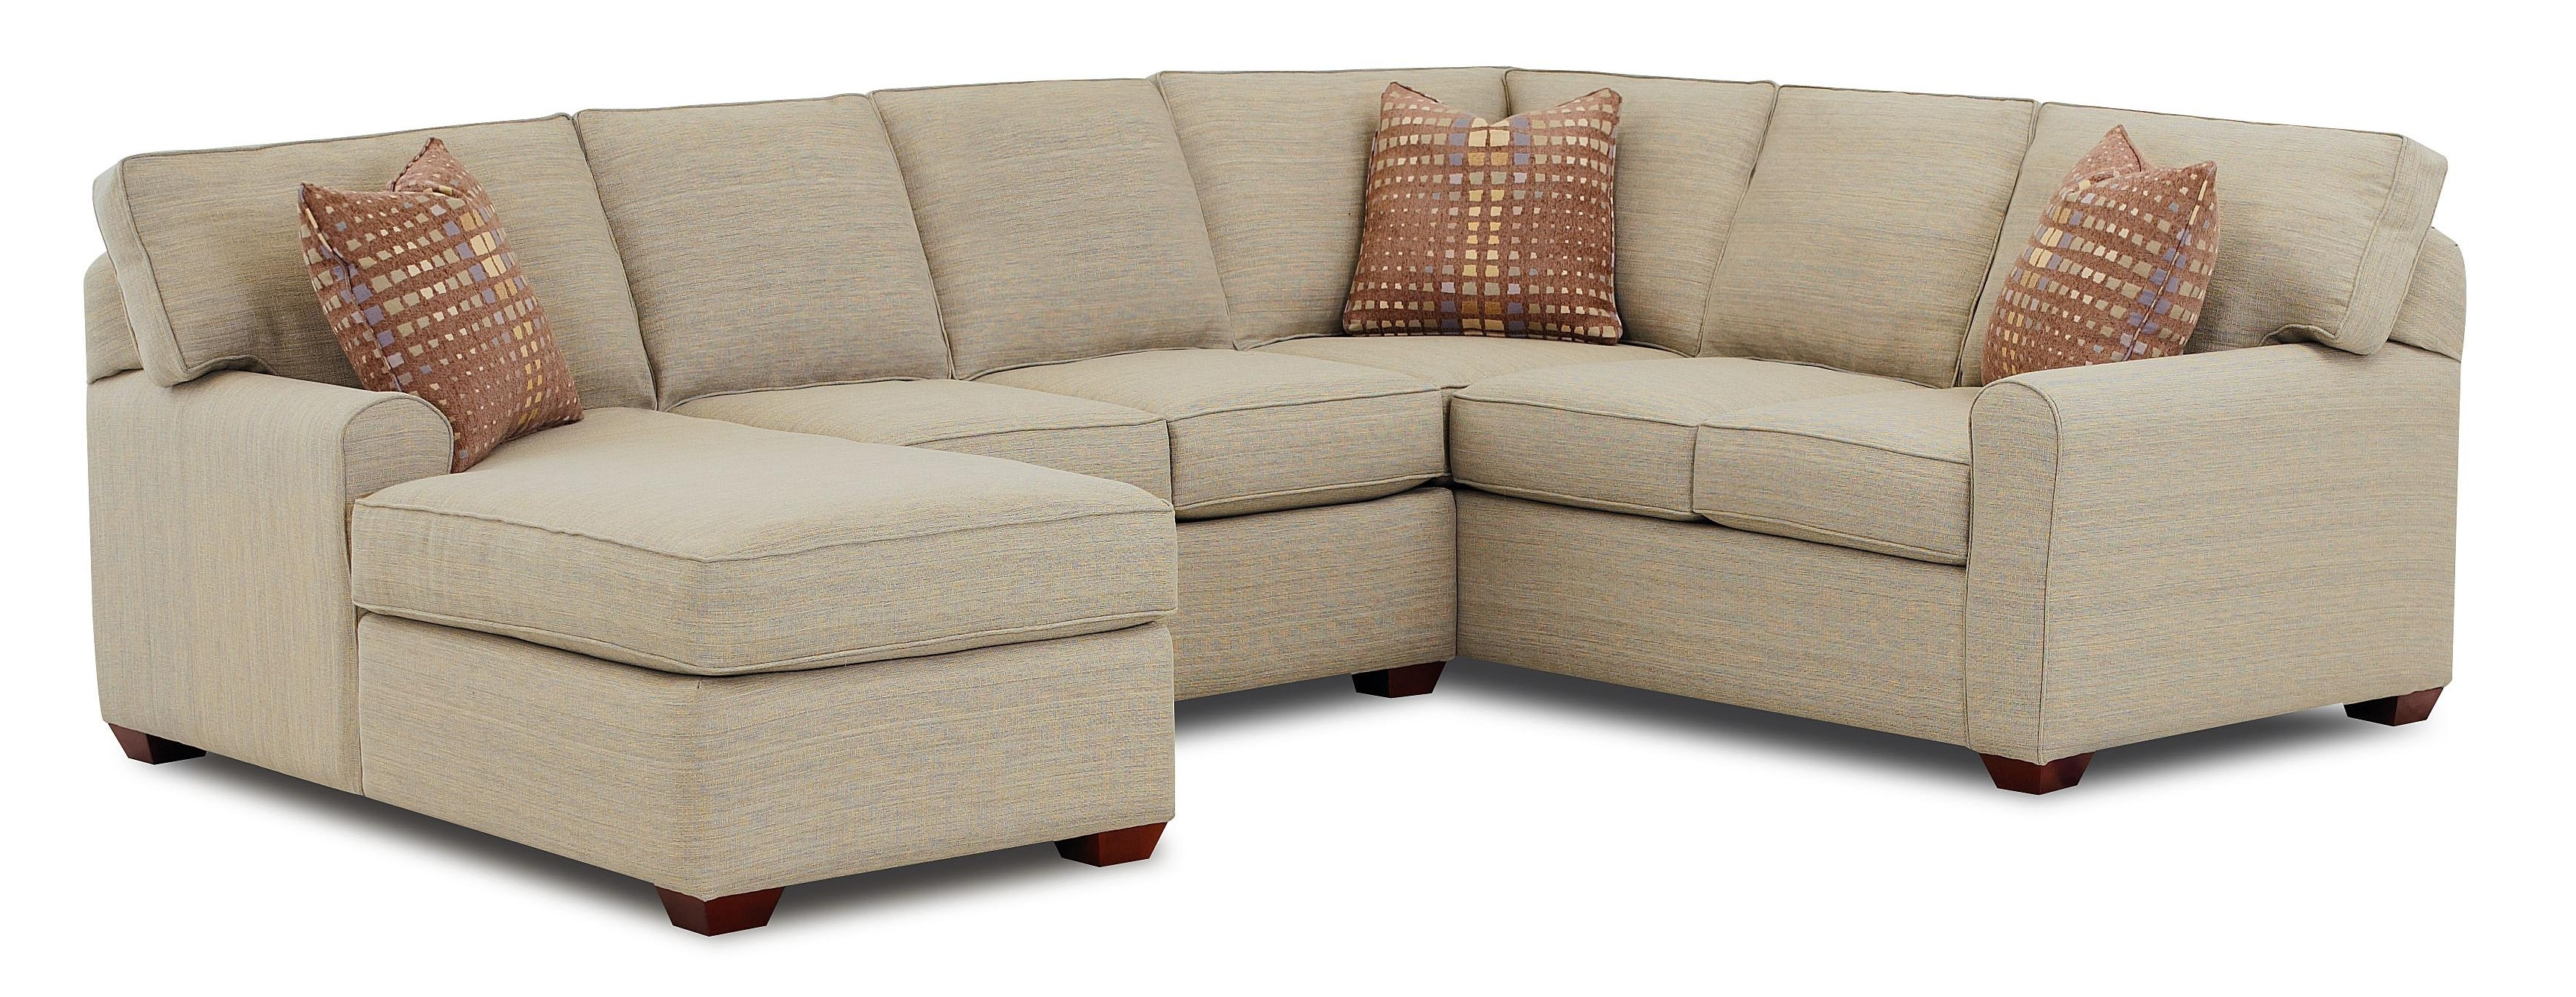 Favorite Small Sectional Sofas With Chaise In Fascinating Small Sectional Sofas With Chaise 82 For Your (View 11 of 15)